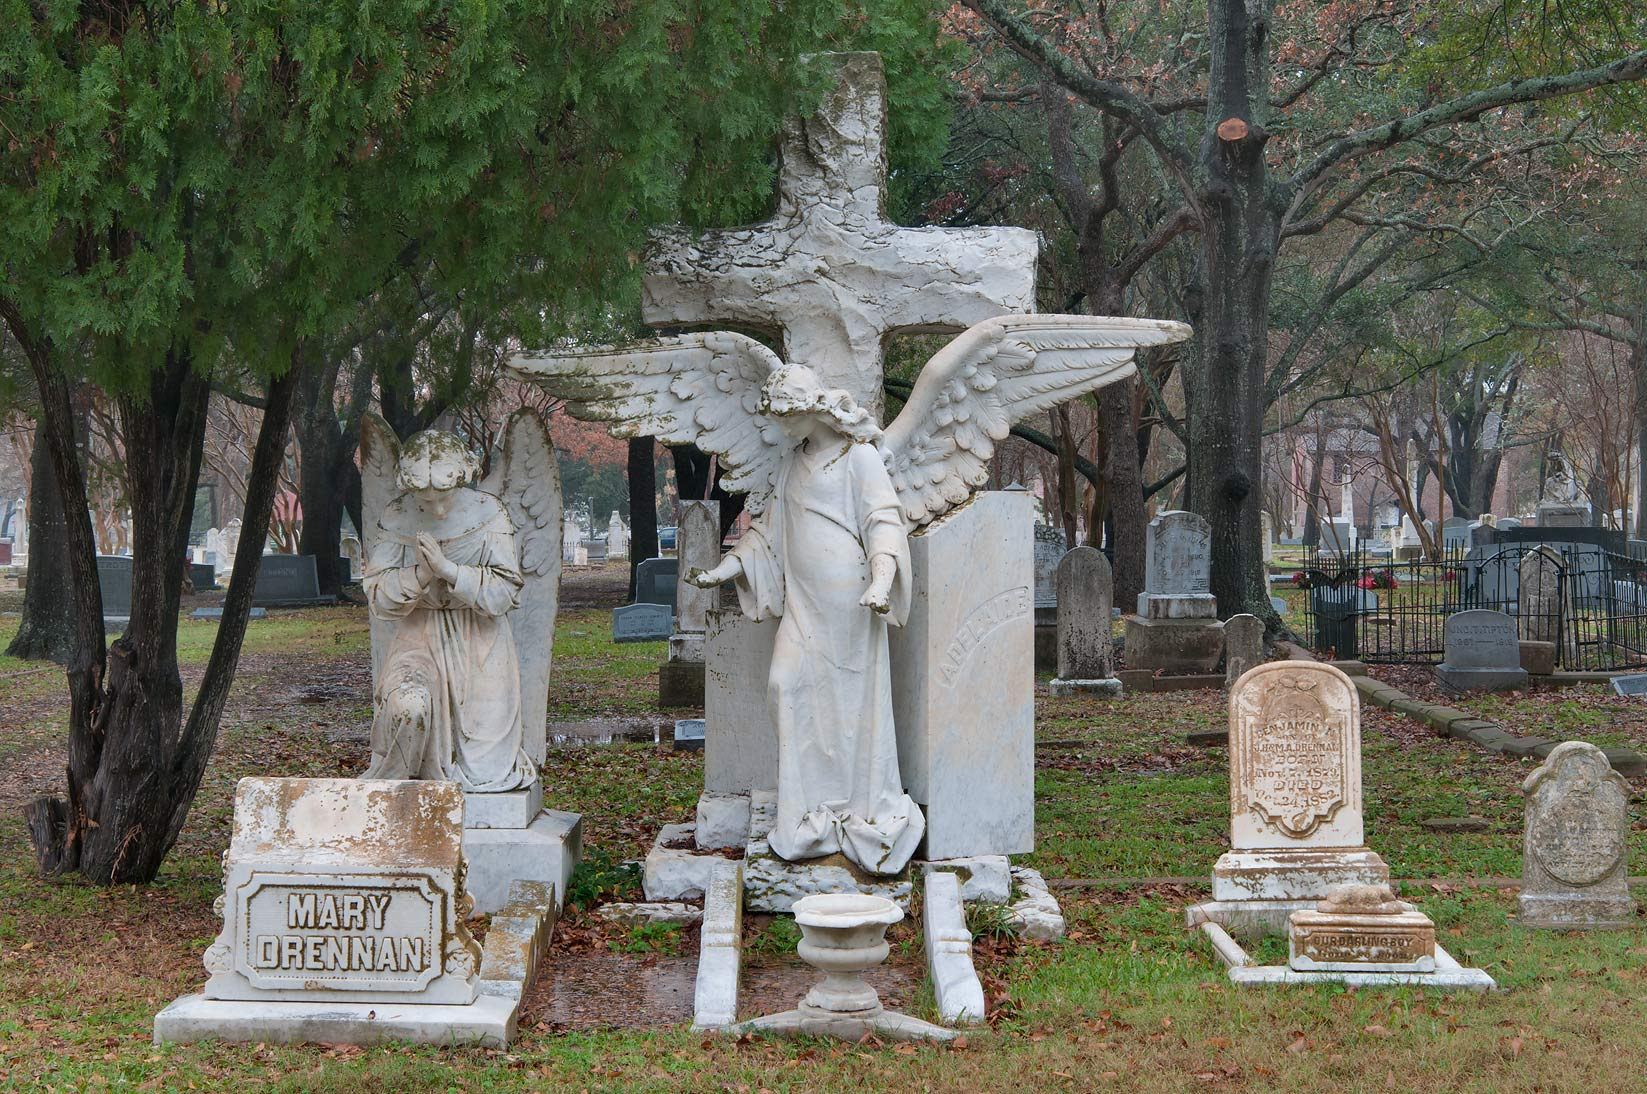 Tomb of Mary Drennan in Calvert Cemetery. Calvert, Texas